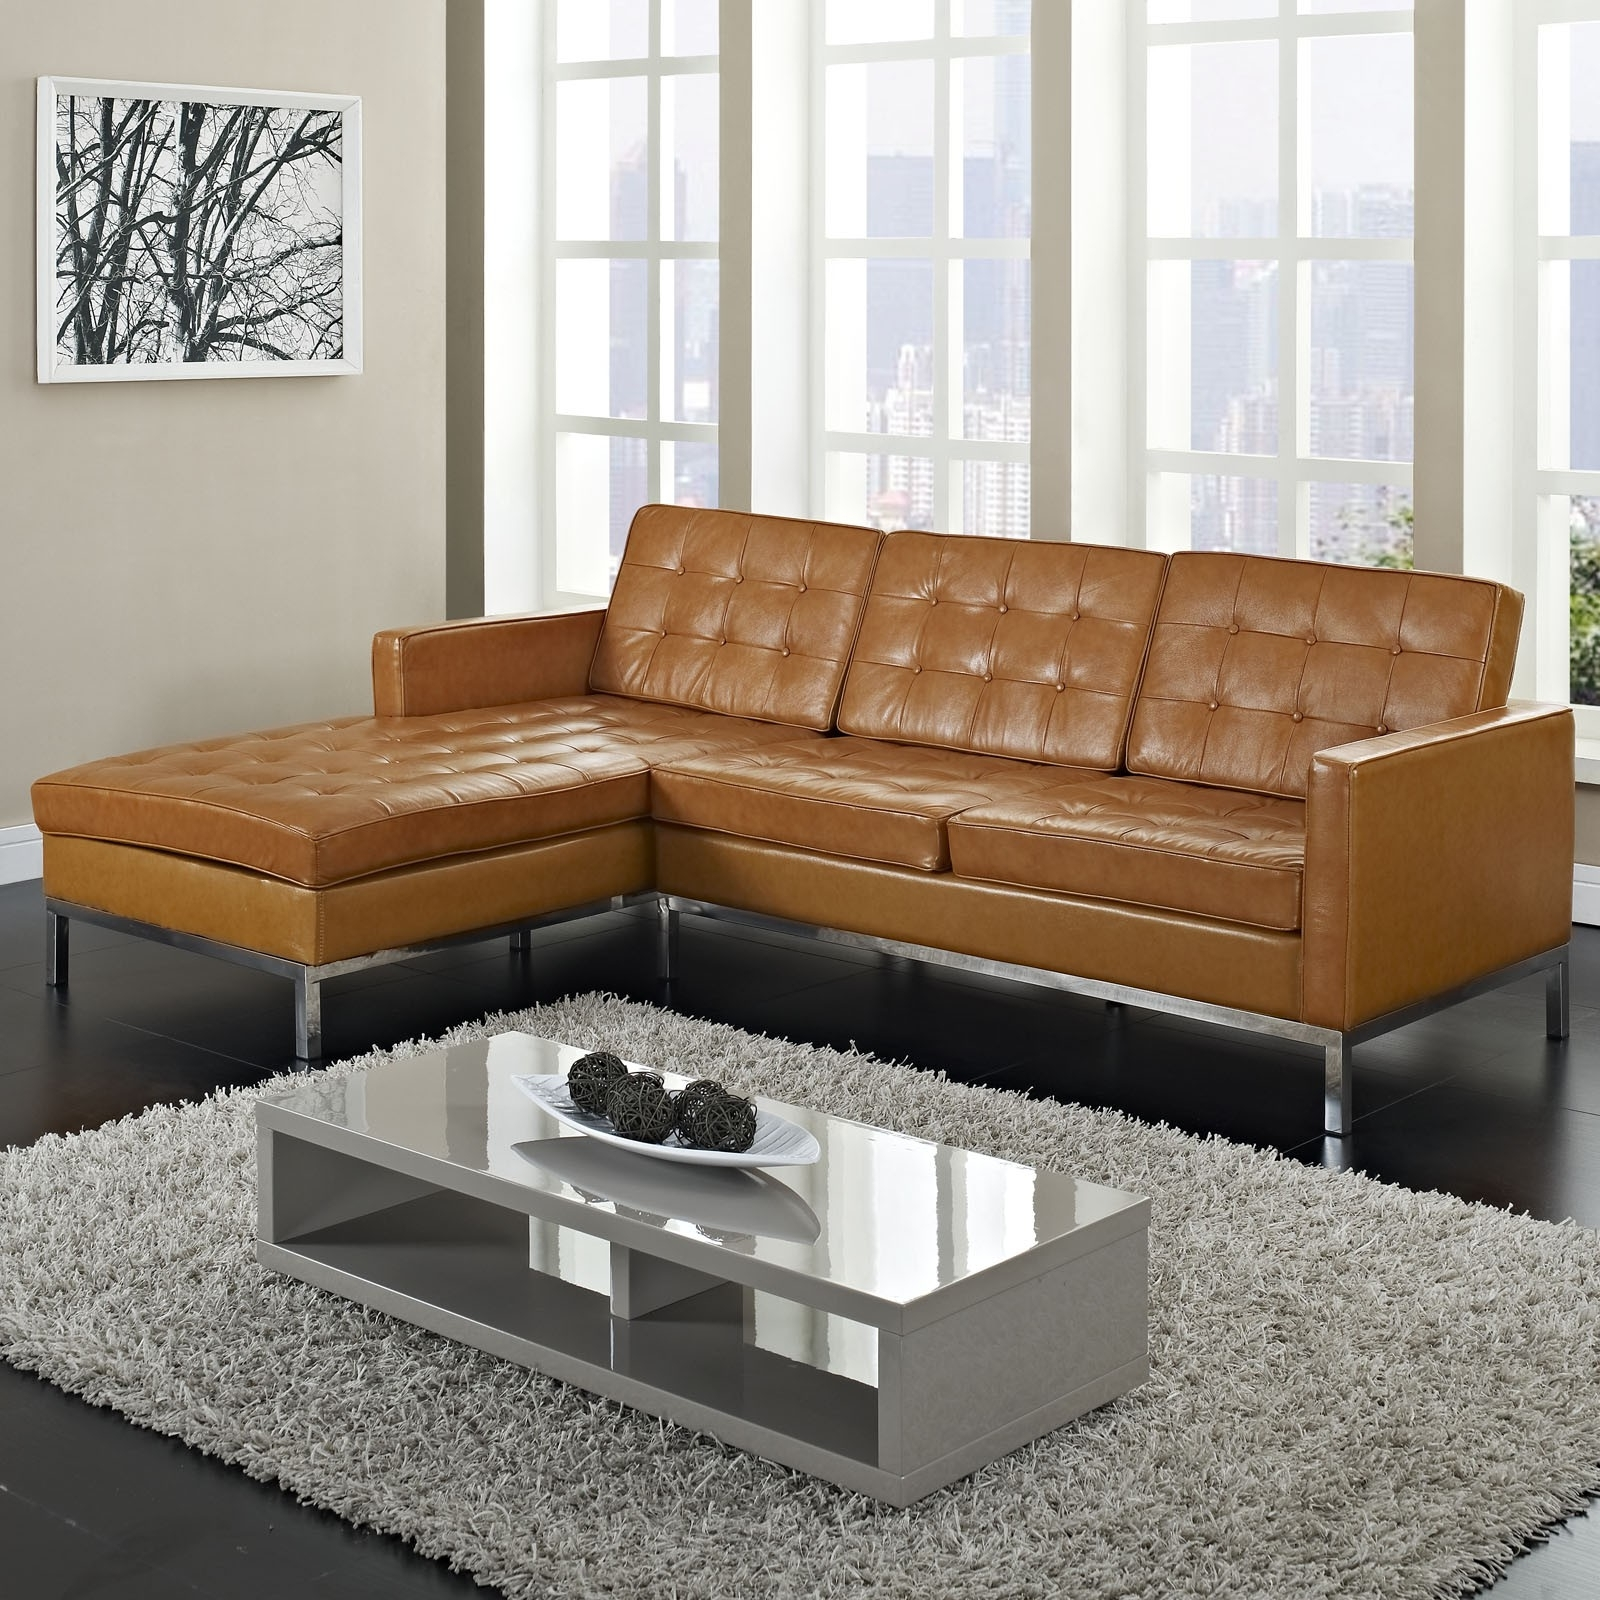 Newest Furniture, Maximizing Small Living Room Spaces With 3 Piece Brown For Light Tan Leather Sofas (View 10 of 15)